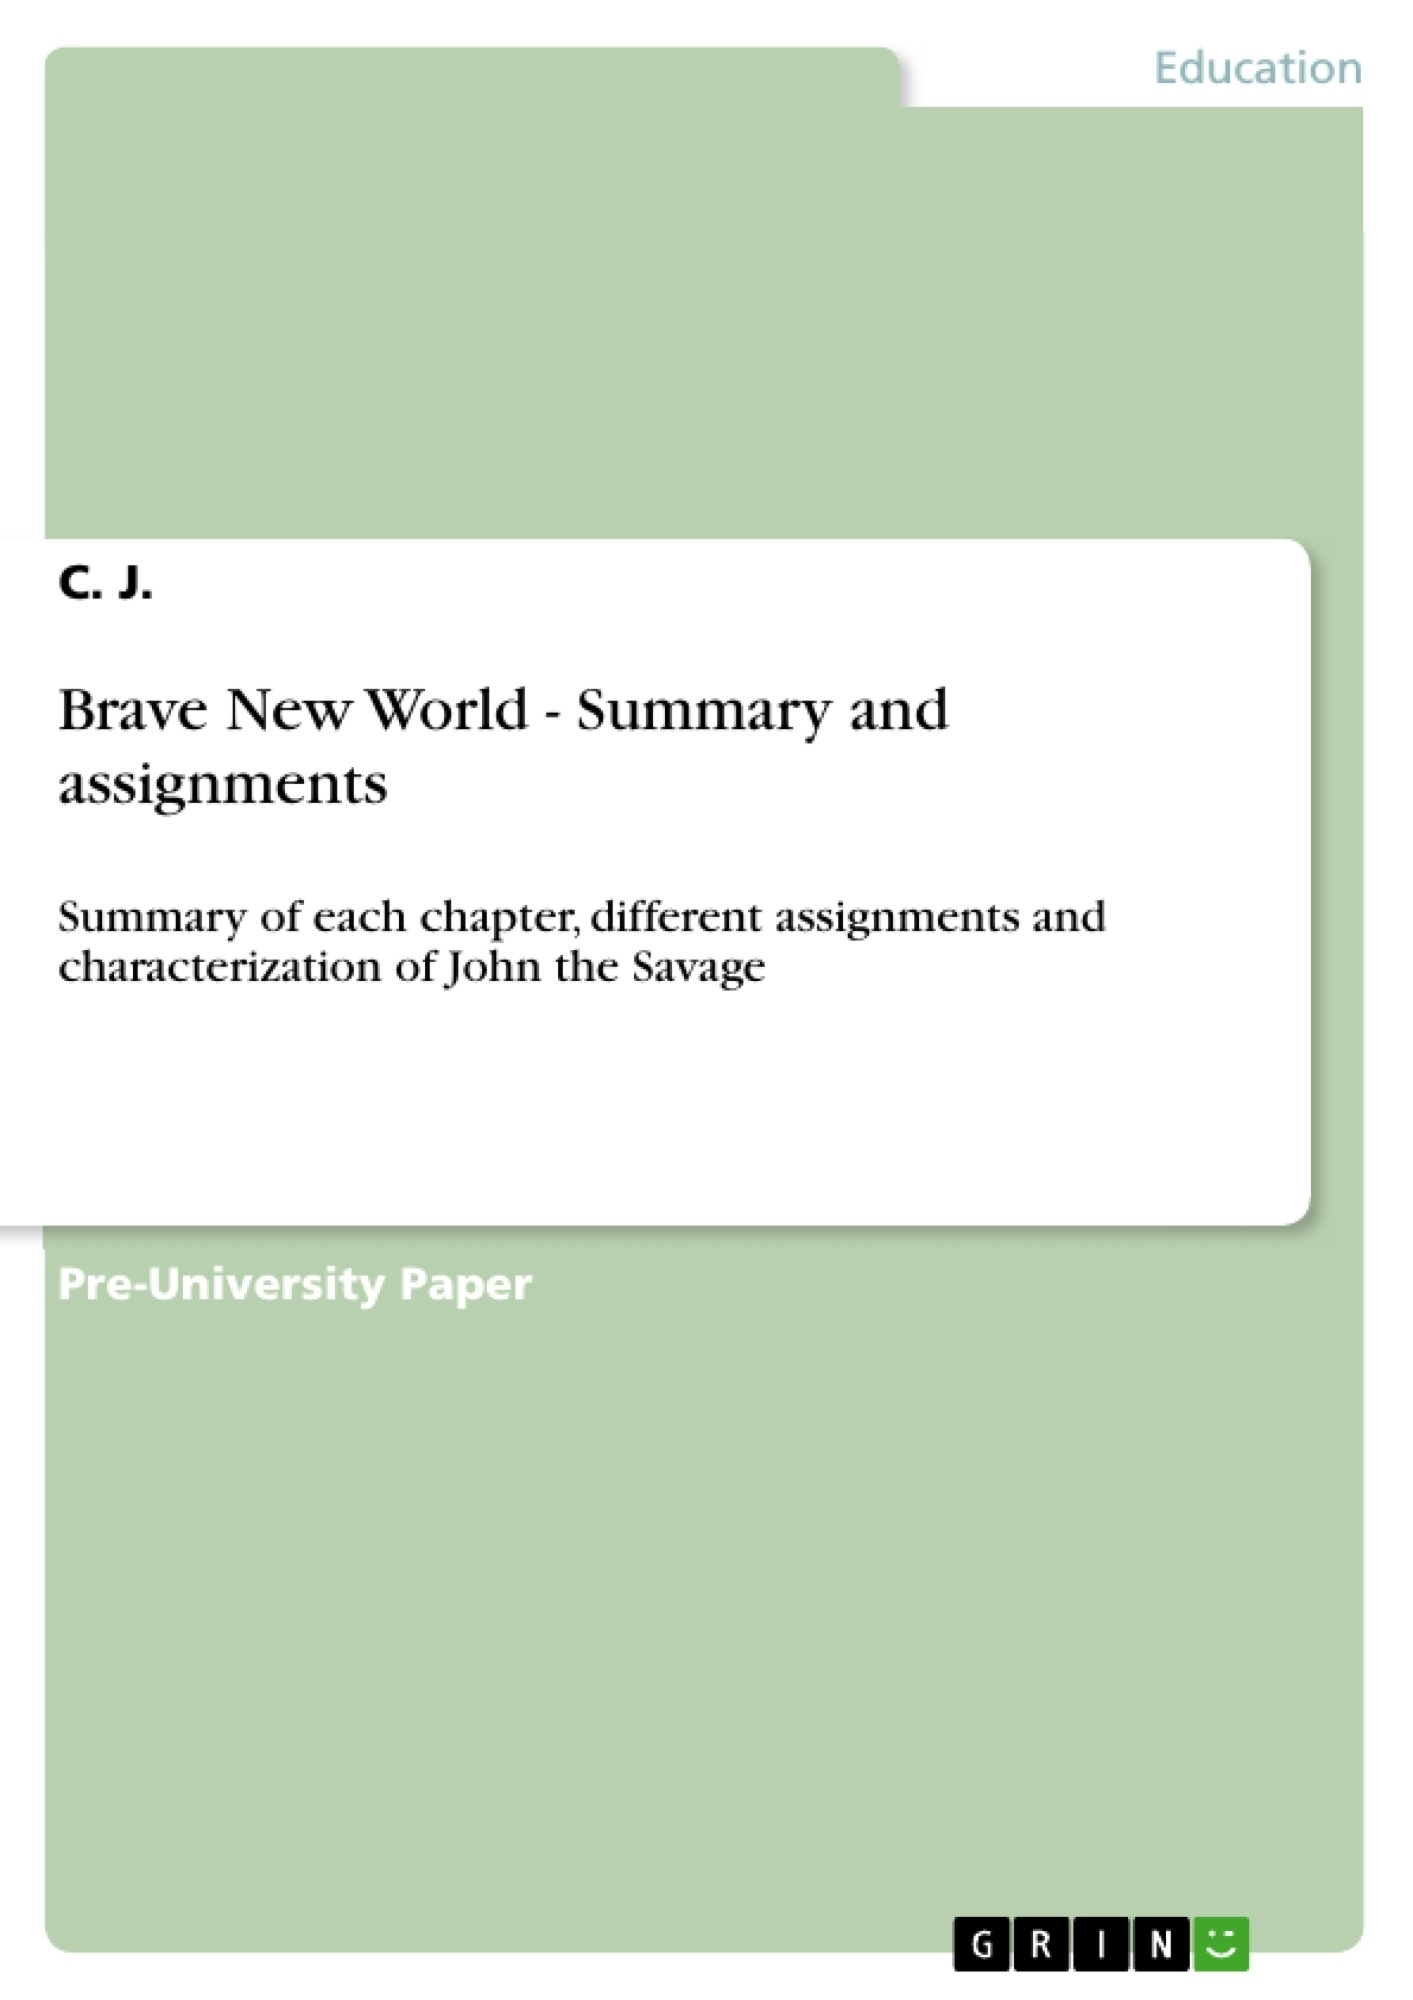 Title: Brave New World - Summary and assignments